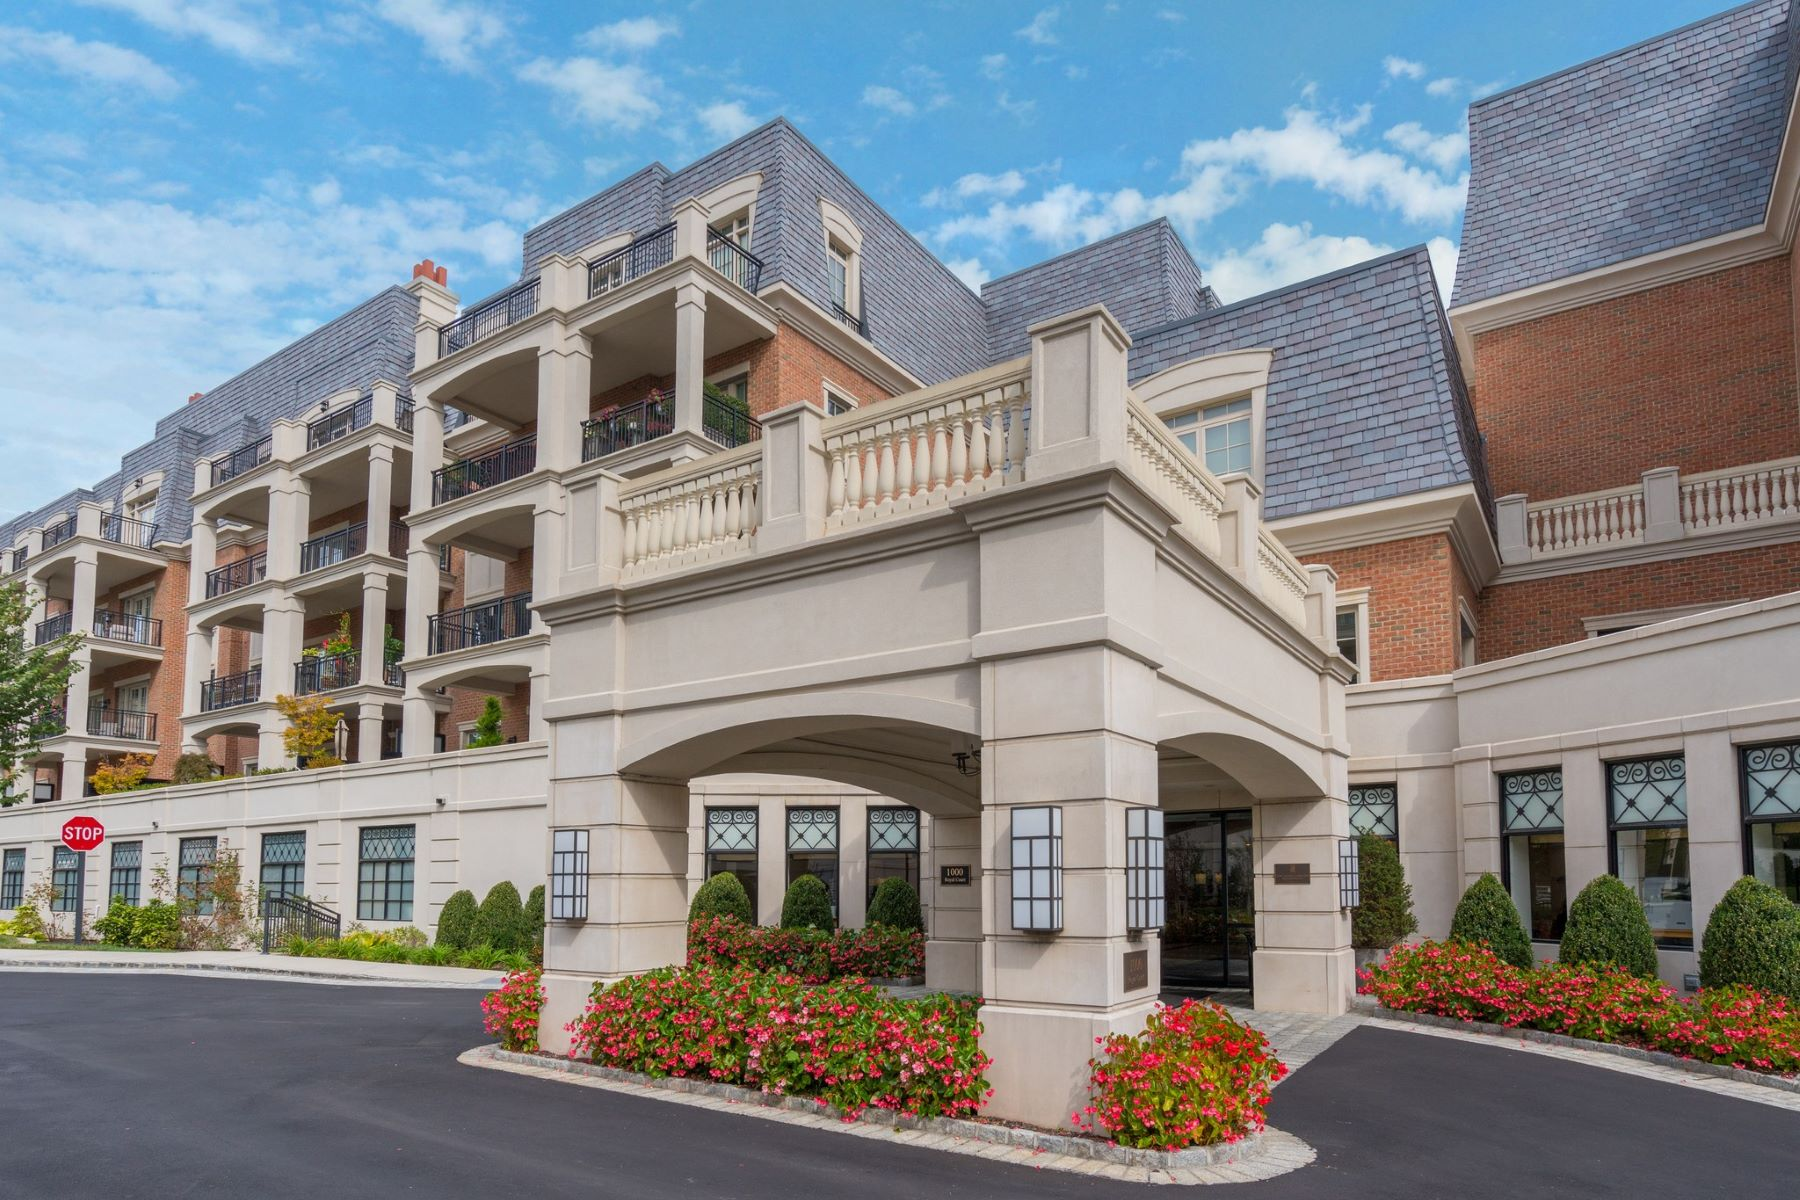 Condominiums for Sale at North Hills 1000 Royal Ct , 1107 North Hills, New York 11030 United States